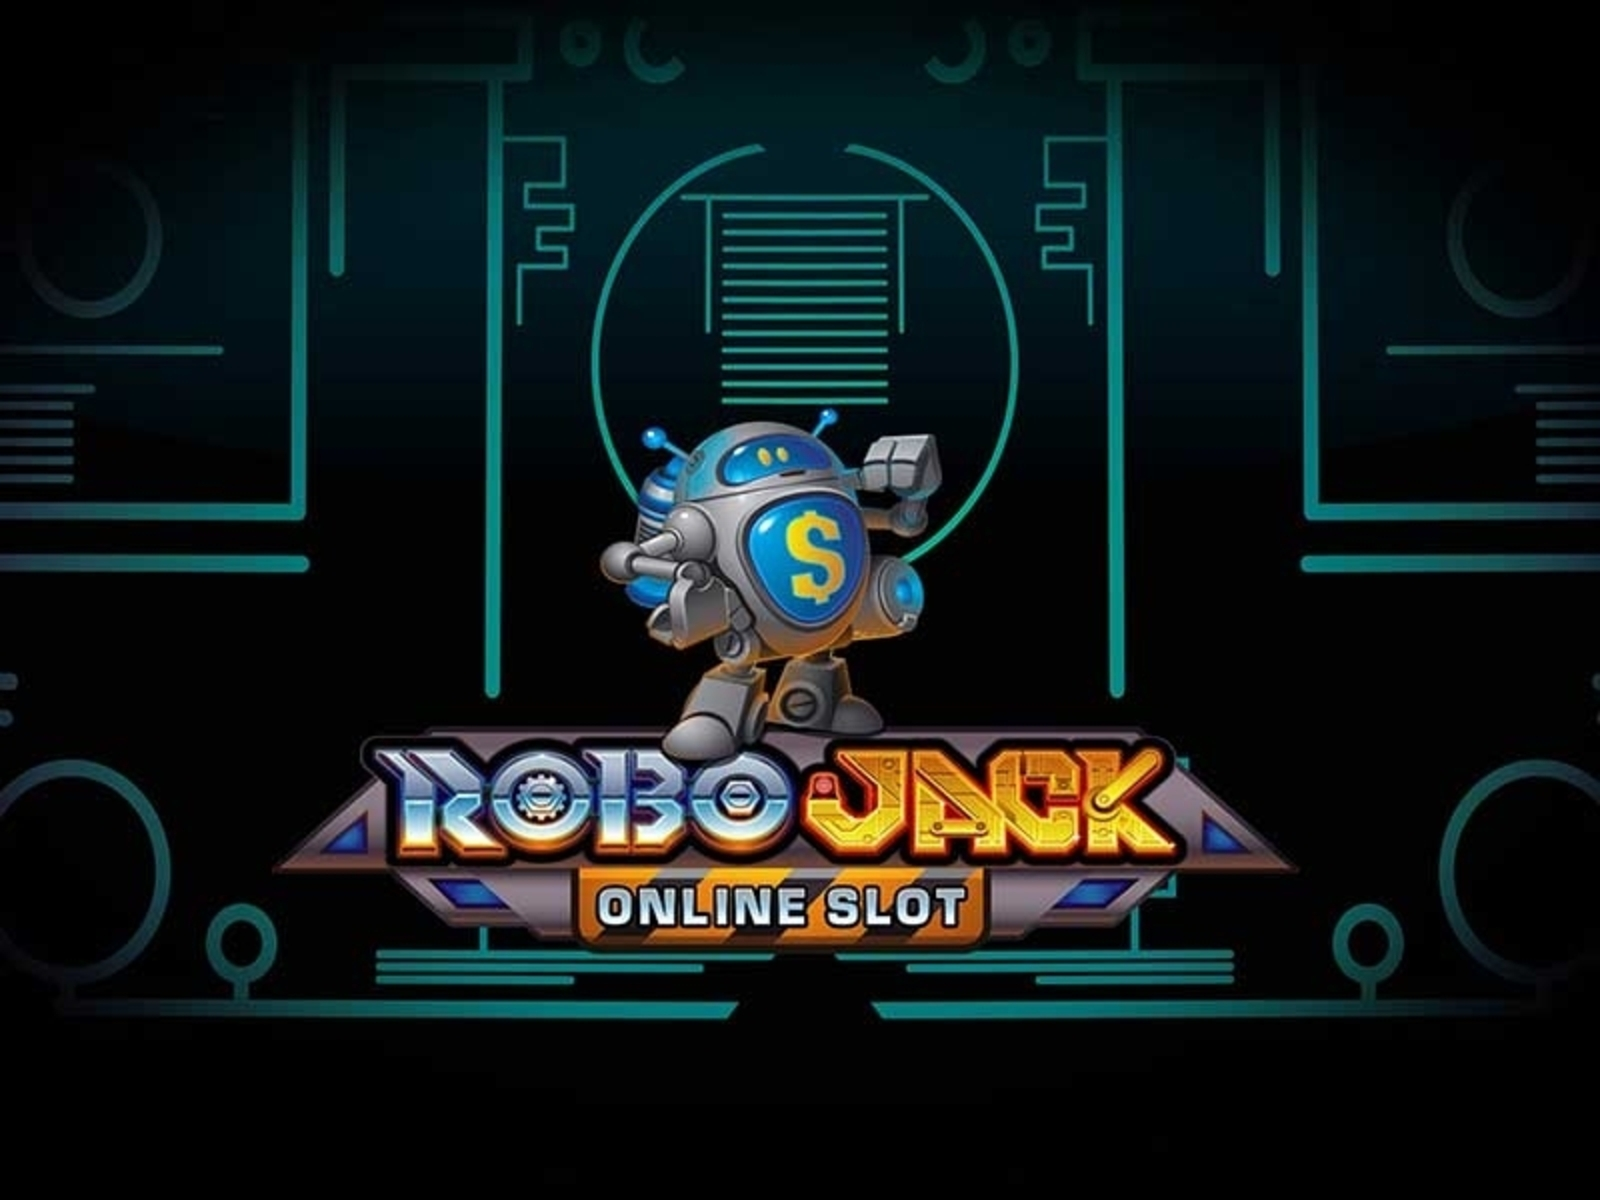 Se Robo Jack Online Slot Demo Game, Microgaming